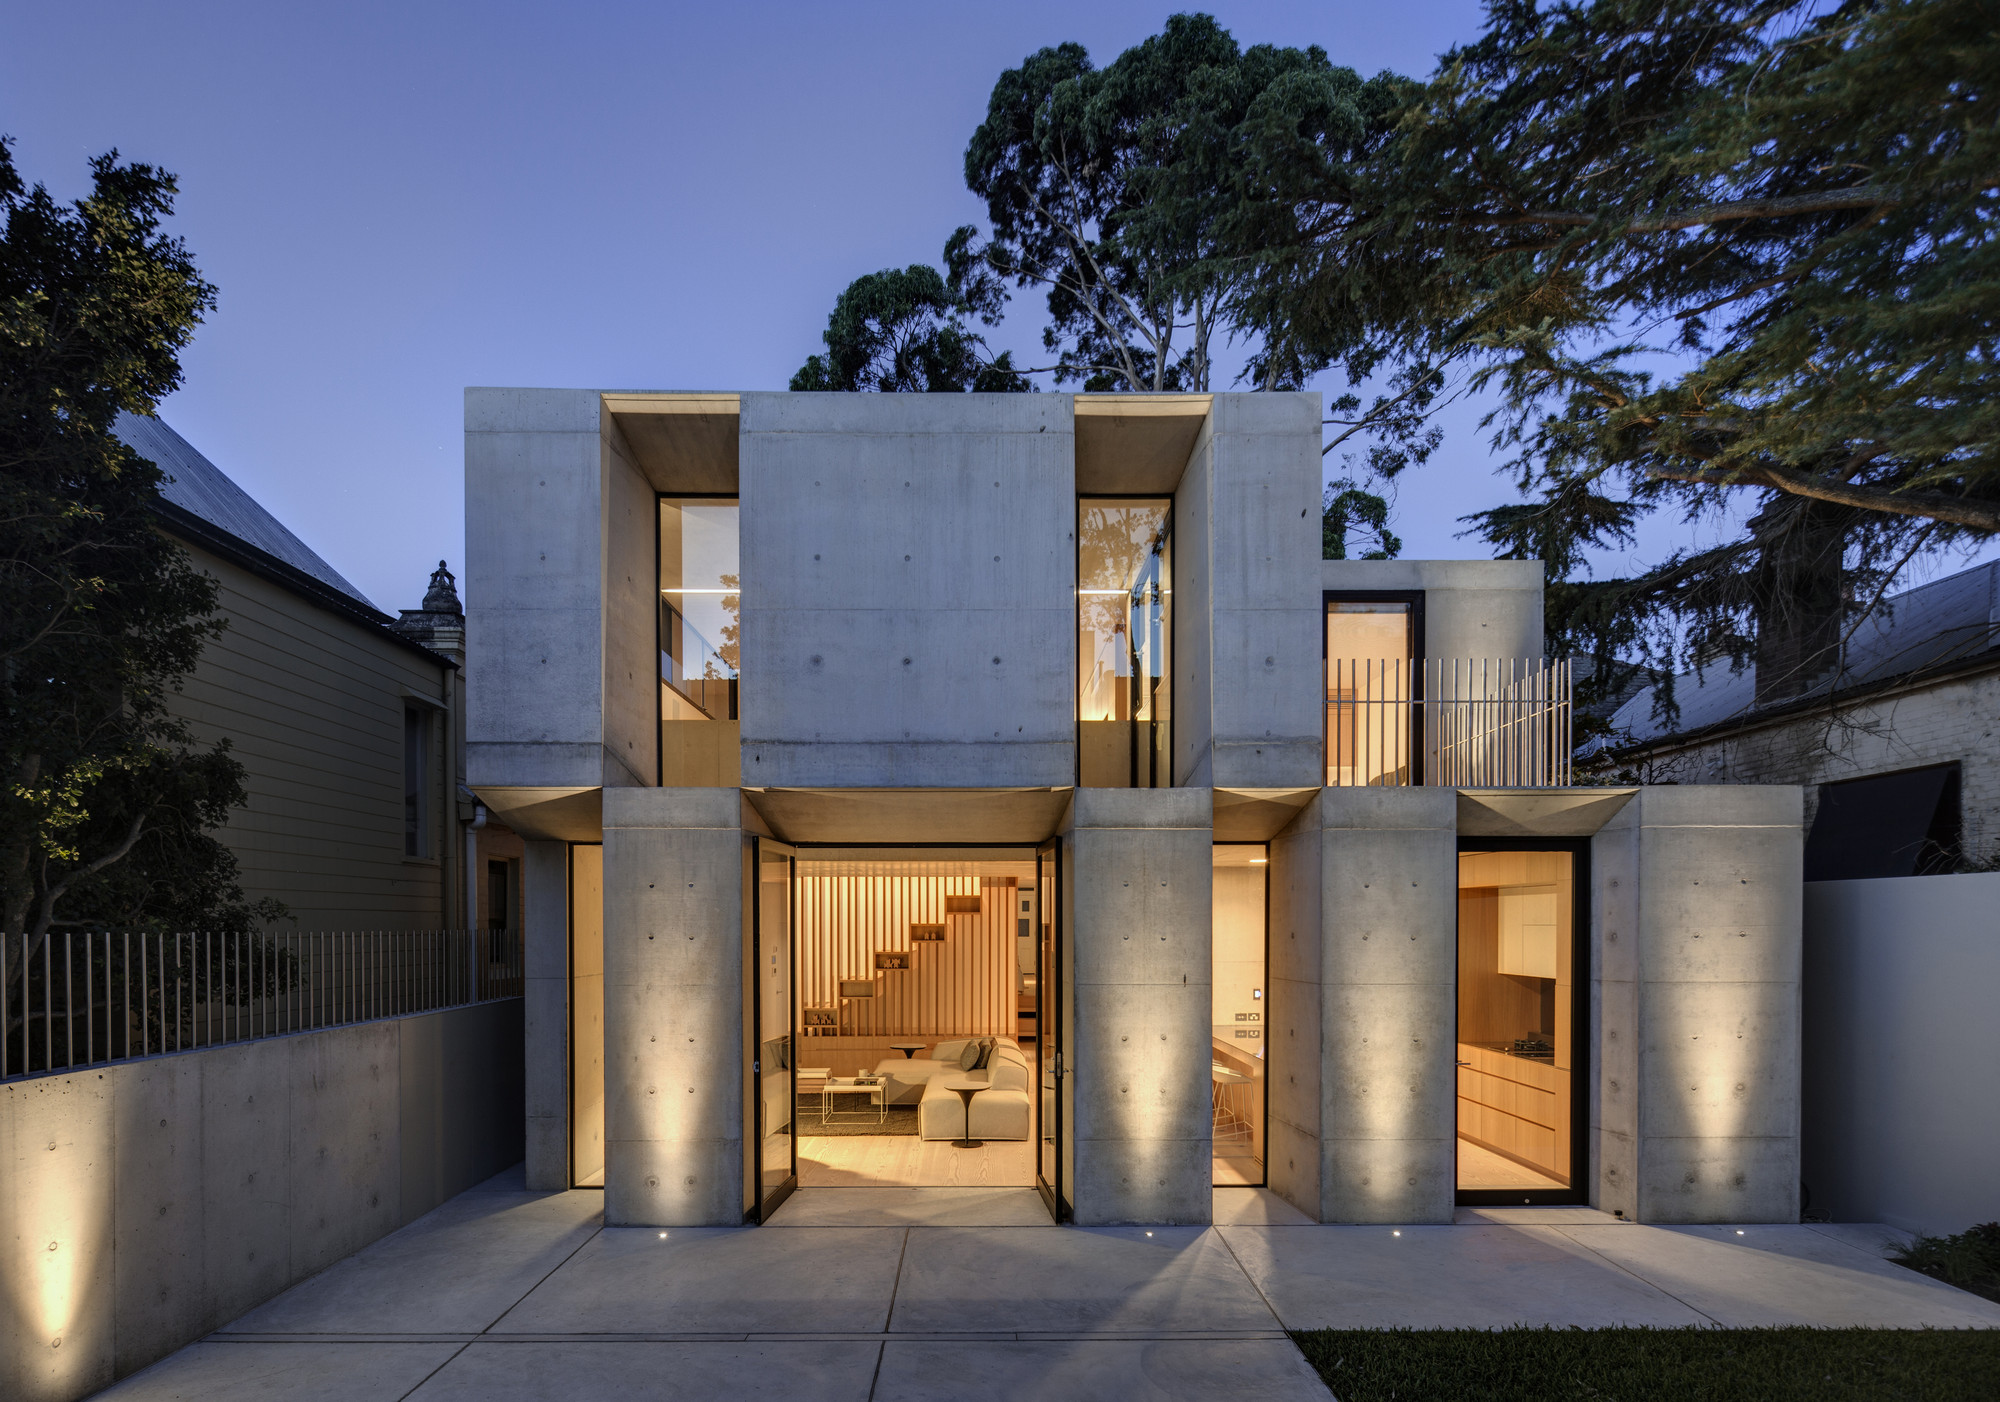 Glebe House / Nobbs Radford Architects, Courtesy of Nobbs Radford Architects